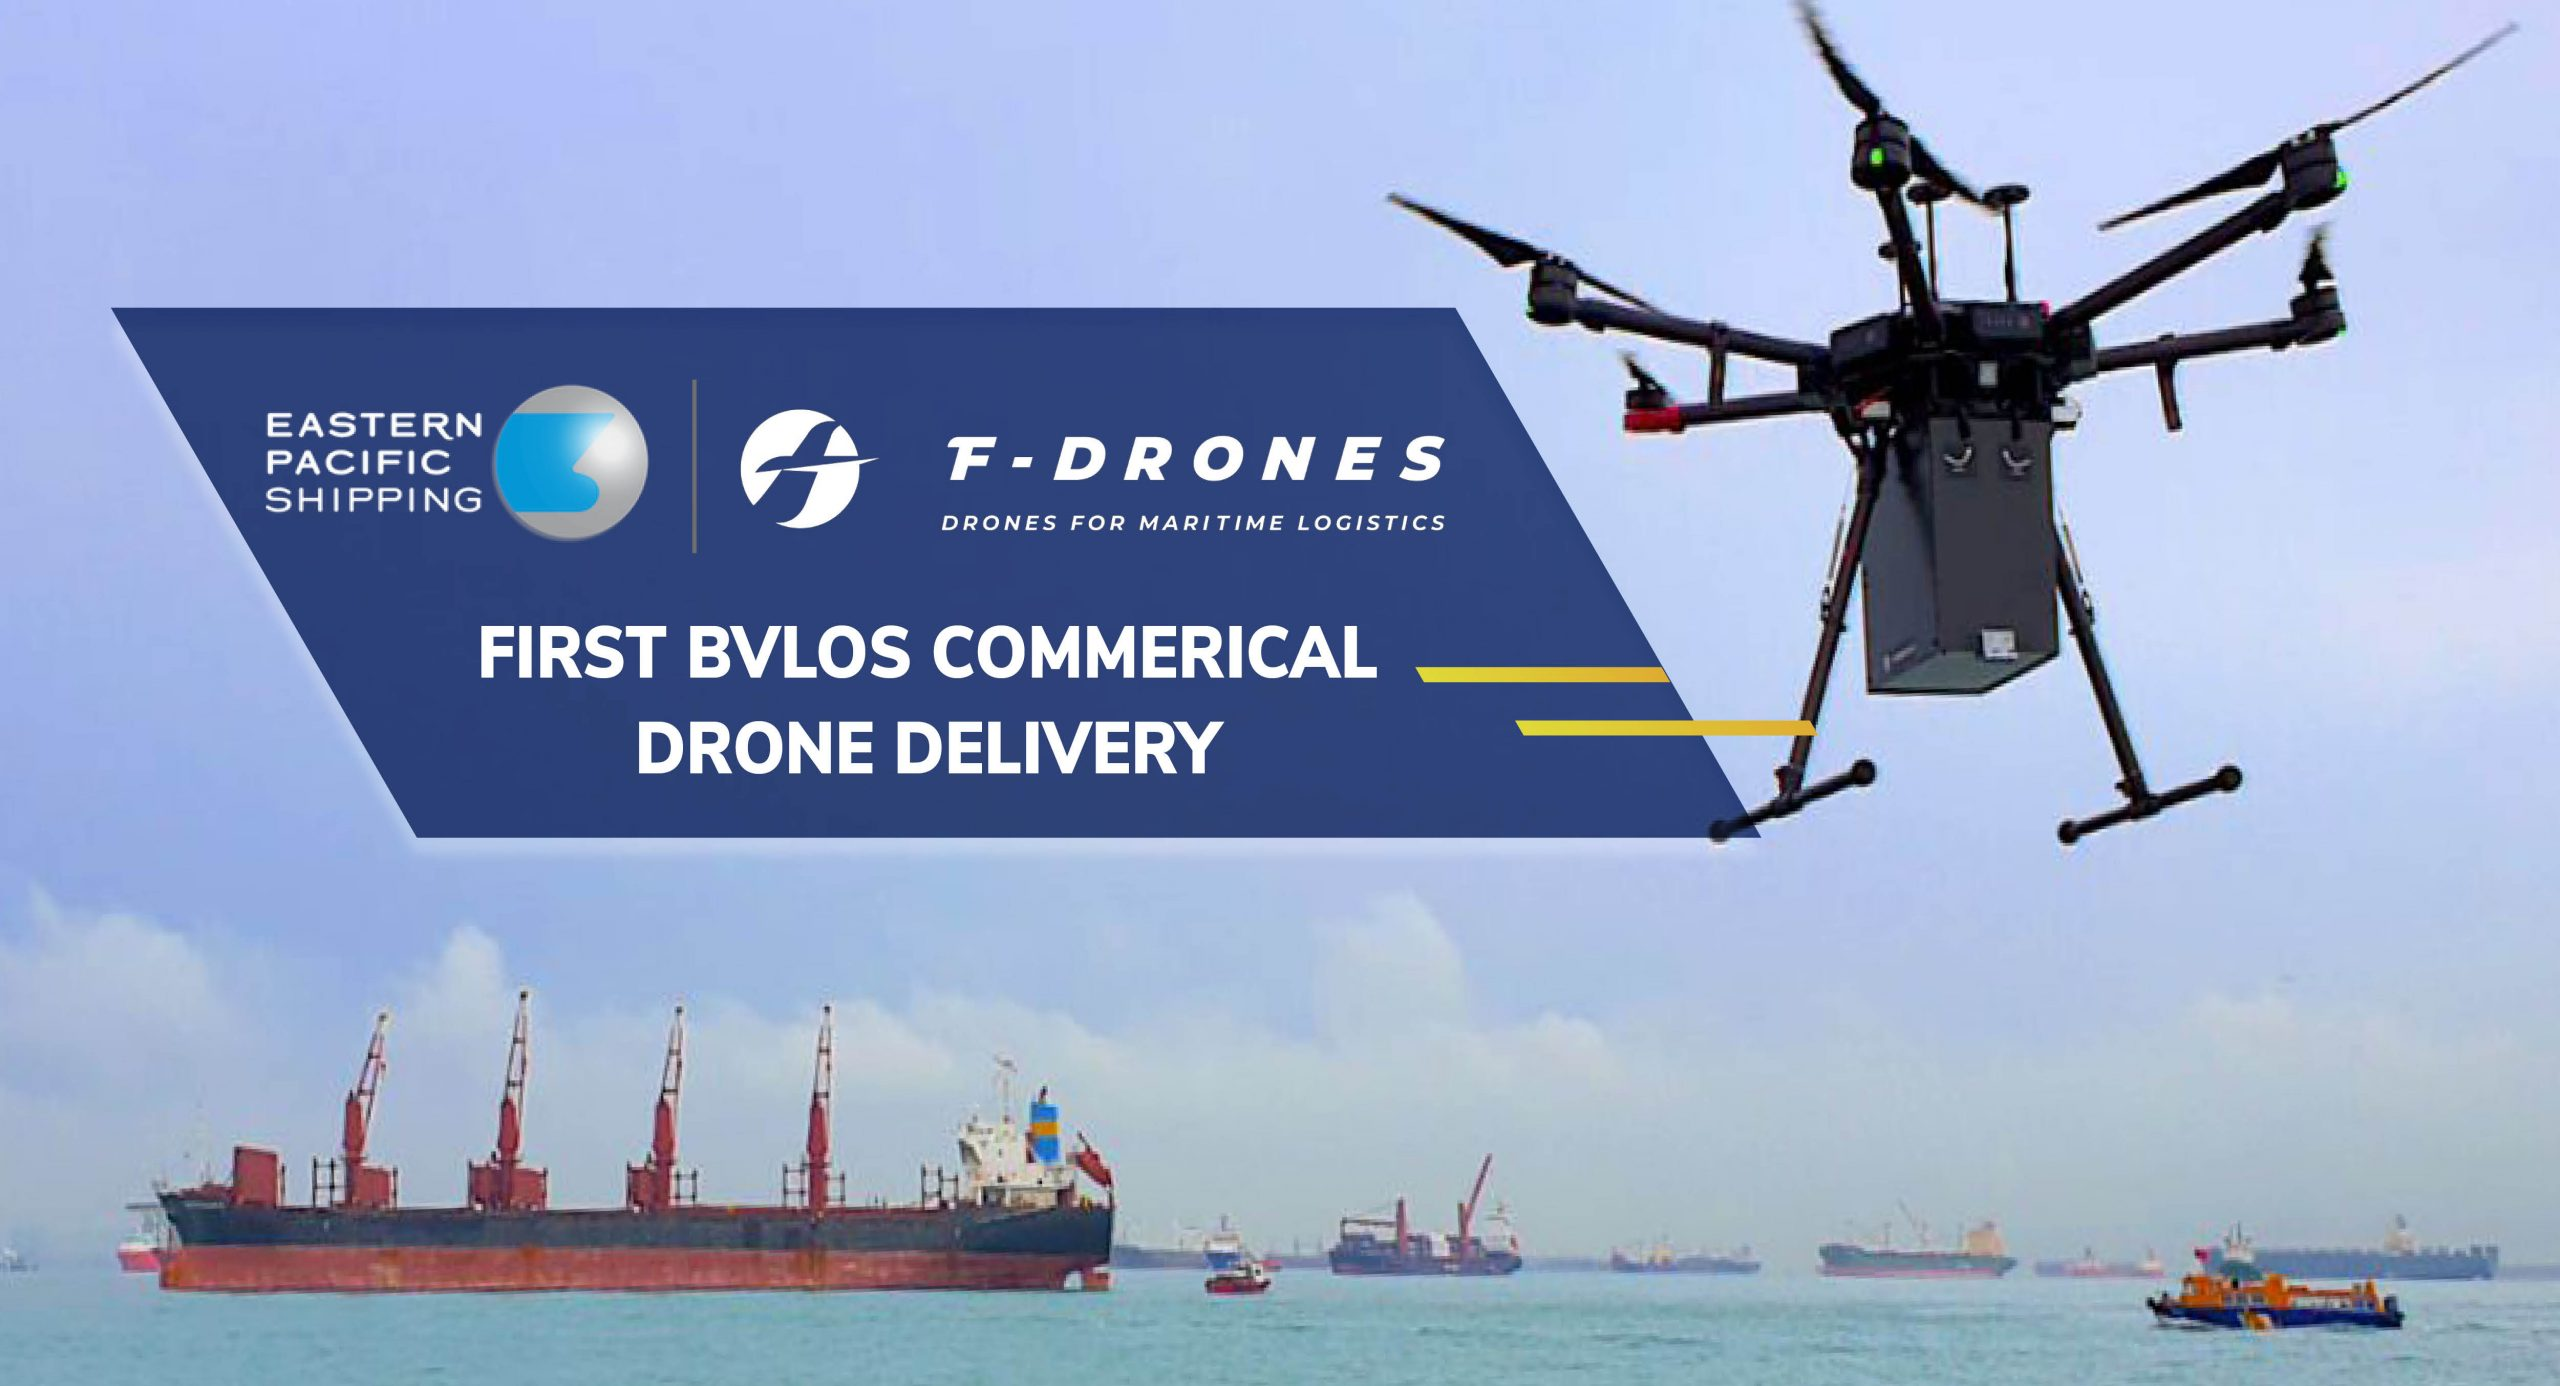 First Commercial Beyond-Visual-Line-of-Sight Drone Delivery (BVLOS) in Singapore